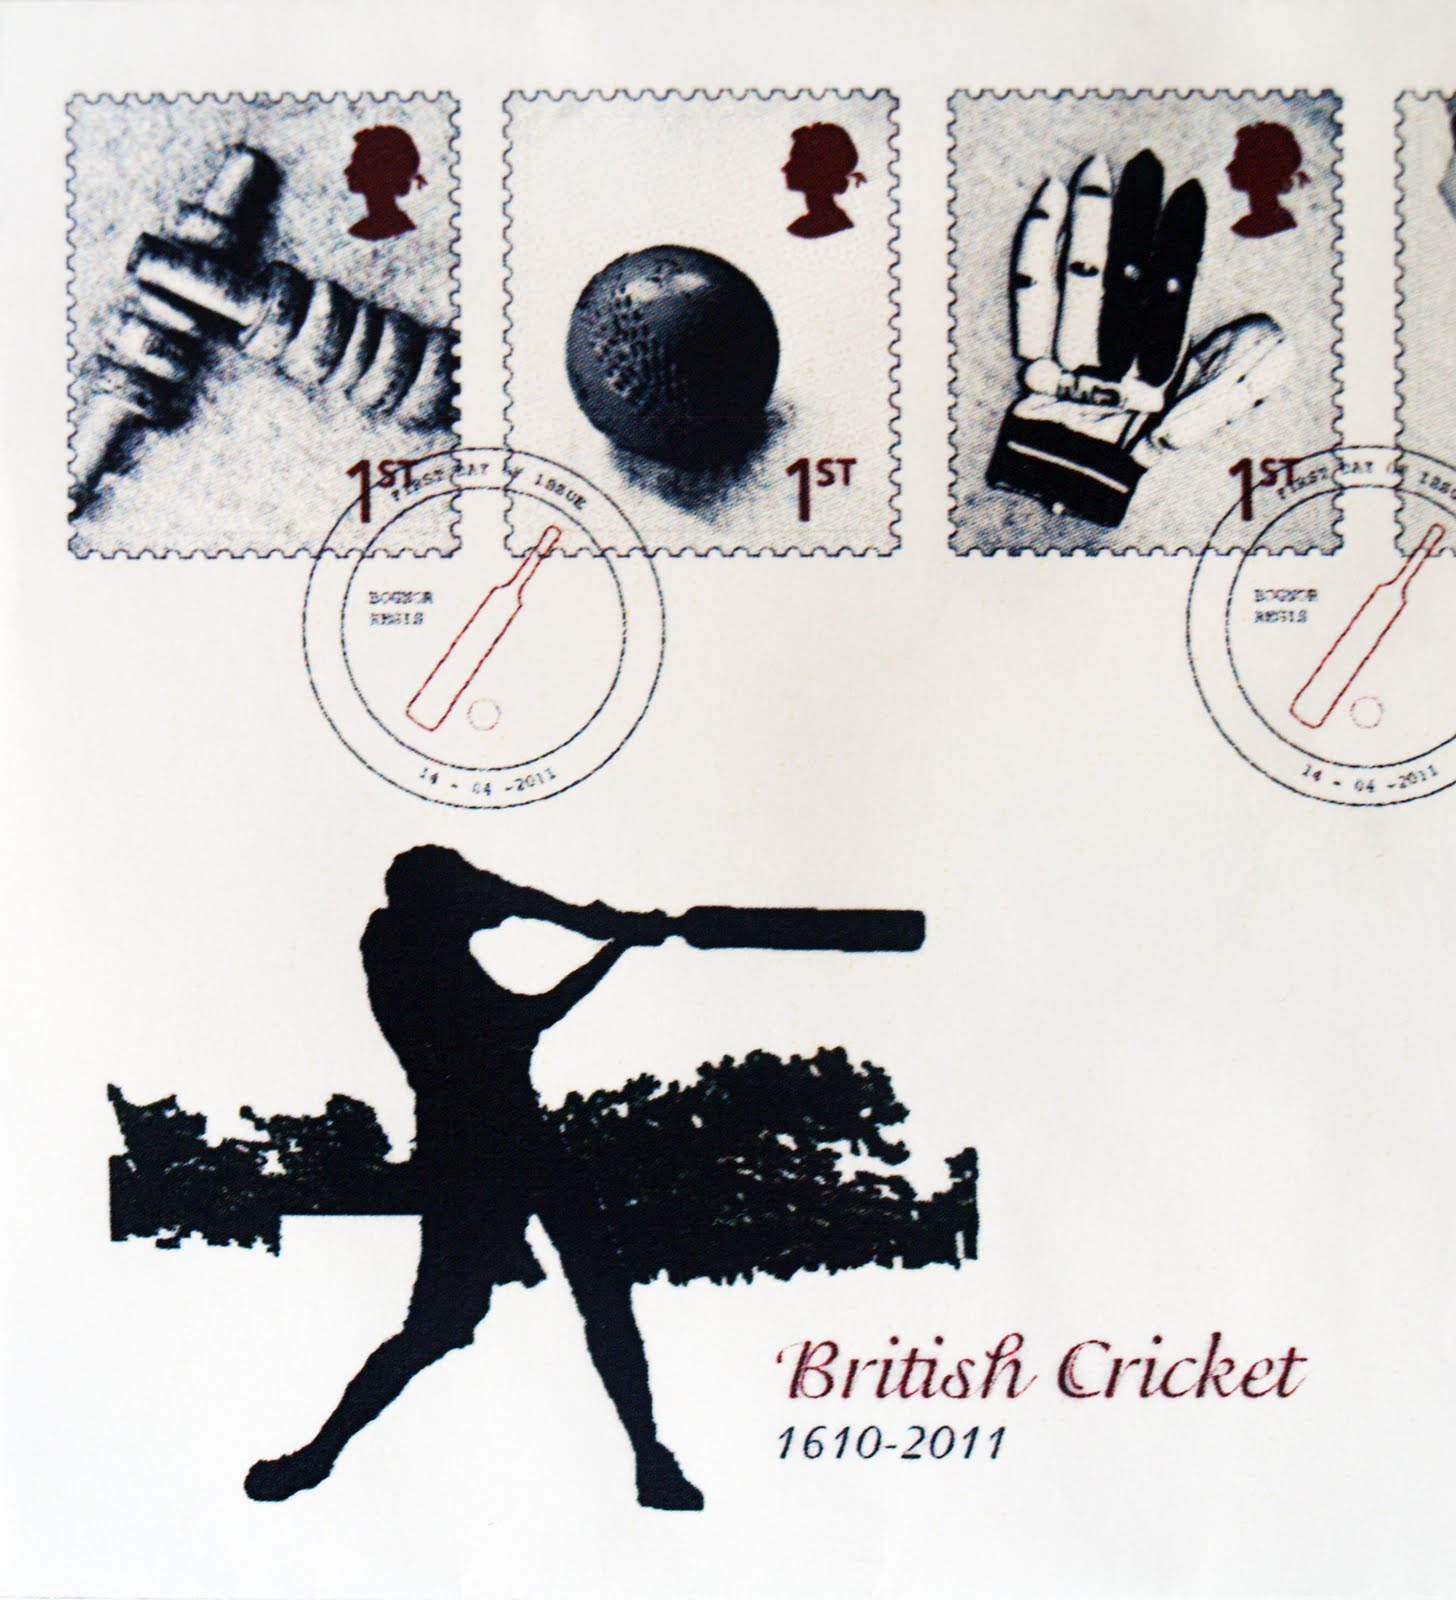 a few thoughts on cricket